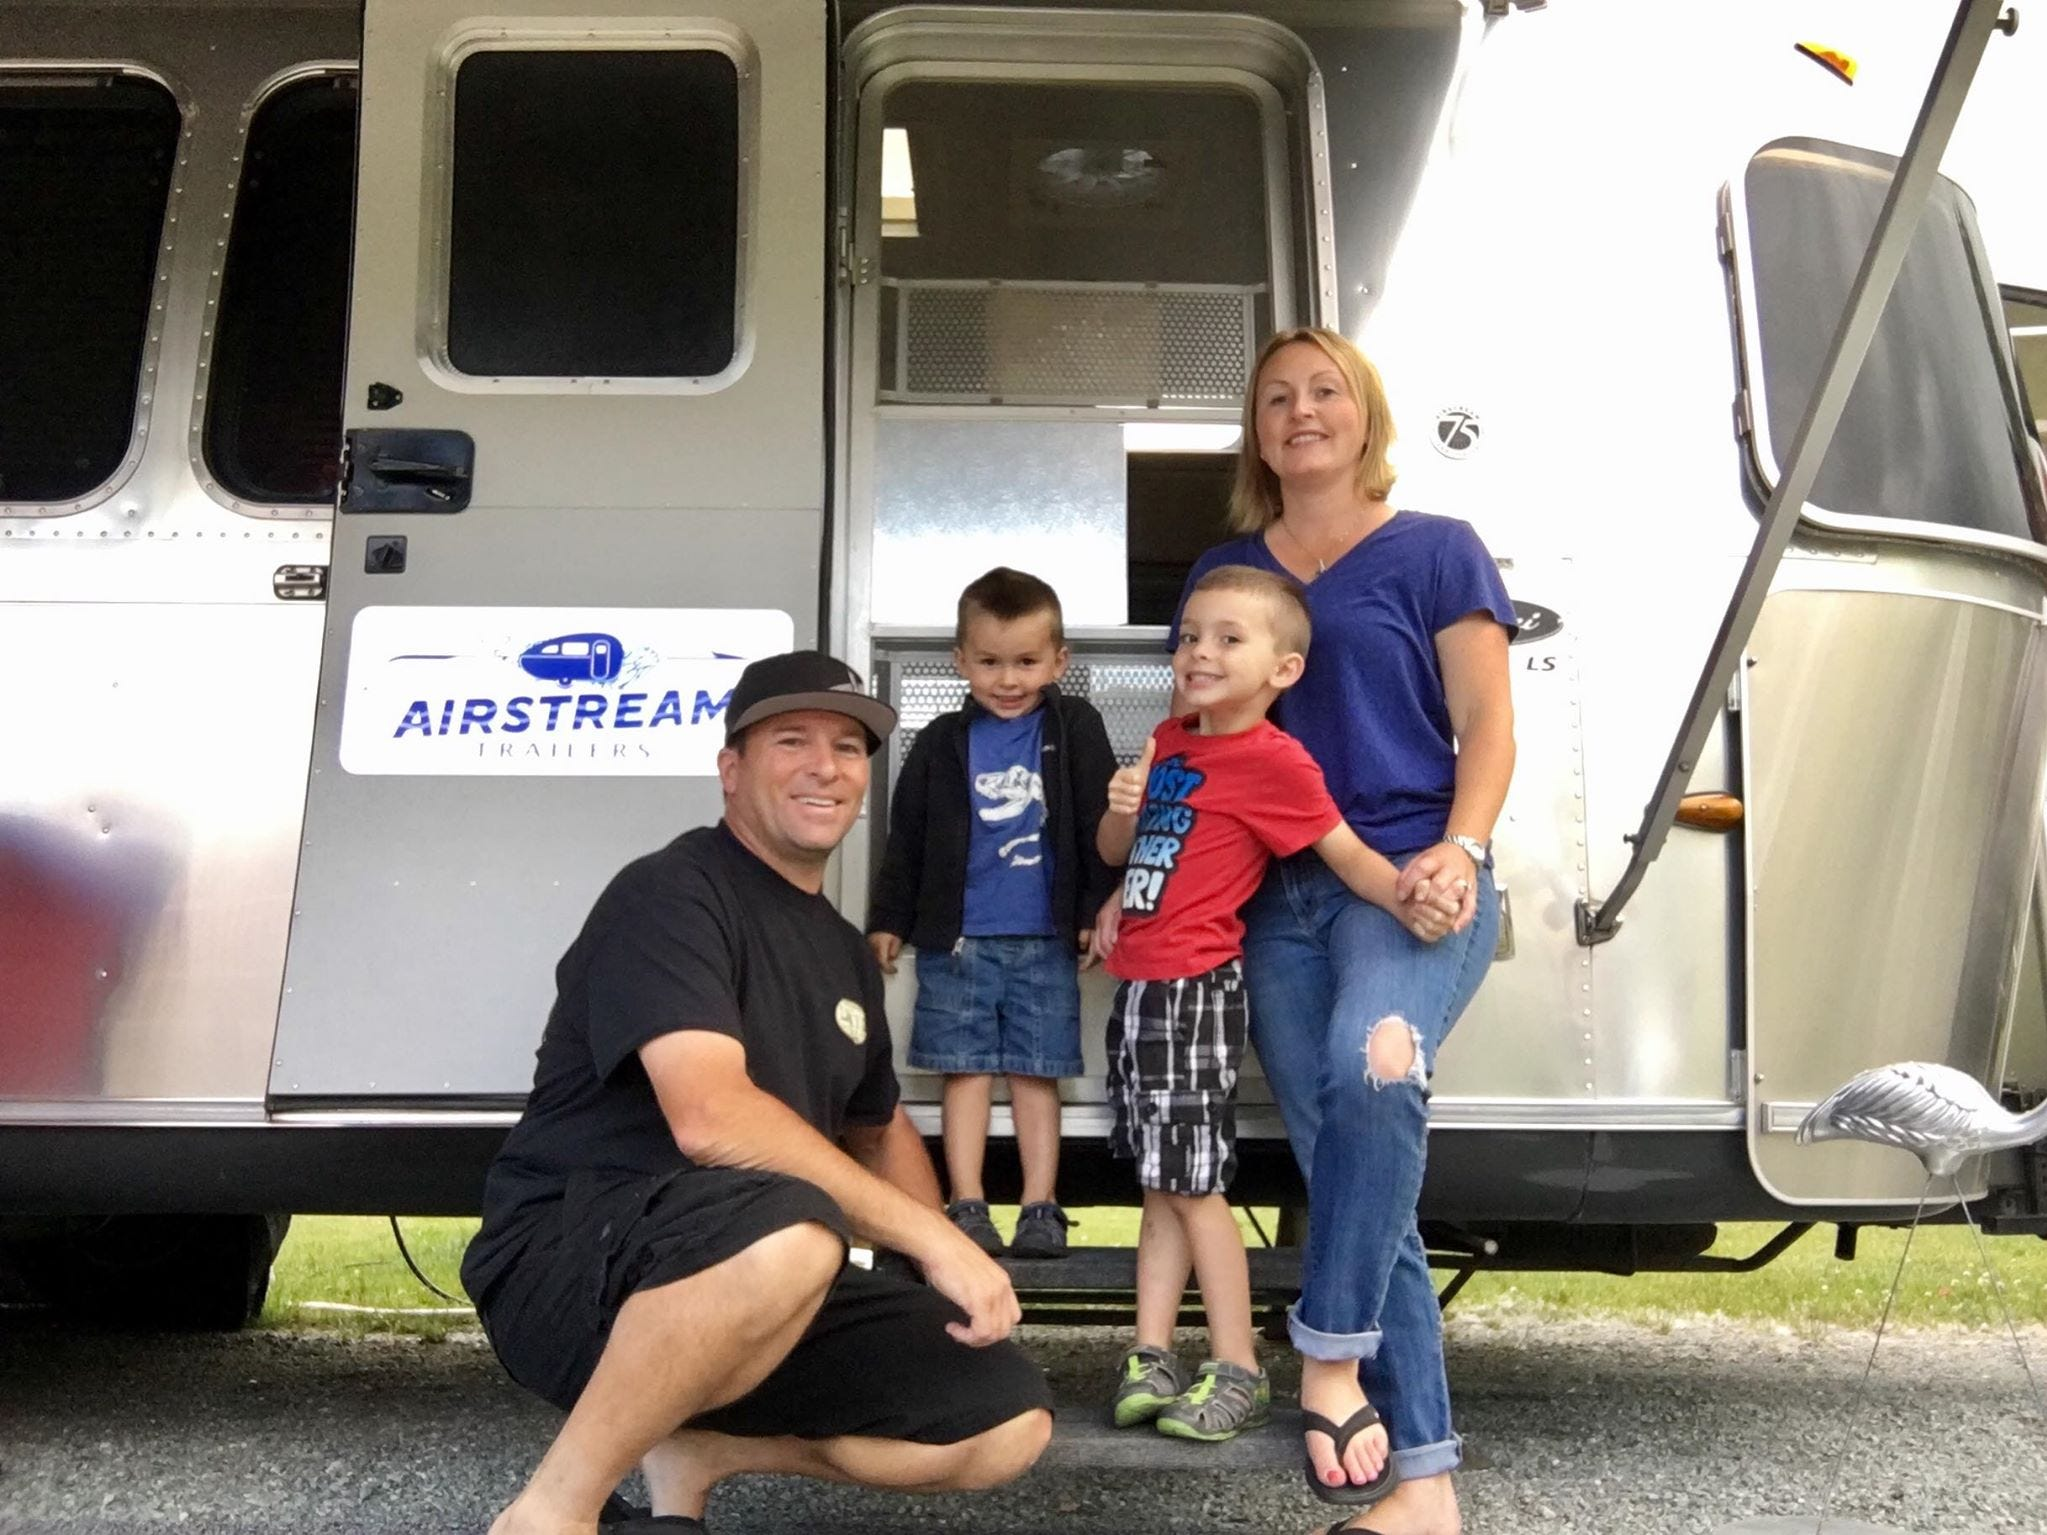 (From left to right) Dean, Jett, Gage and Rebecca Machado posed in front of their 2006 Airstream in Acampo, CA.